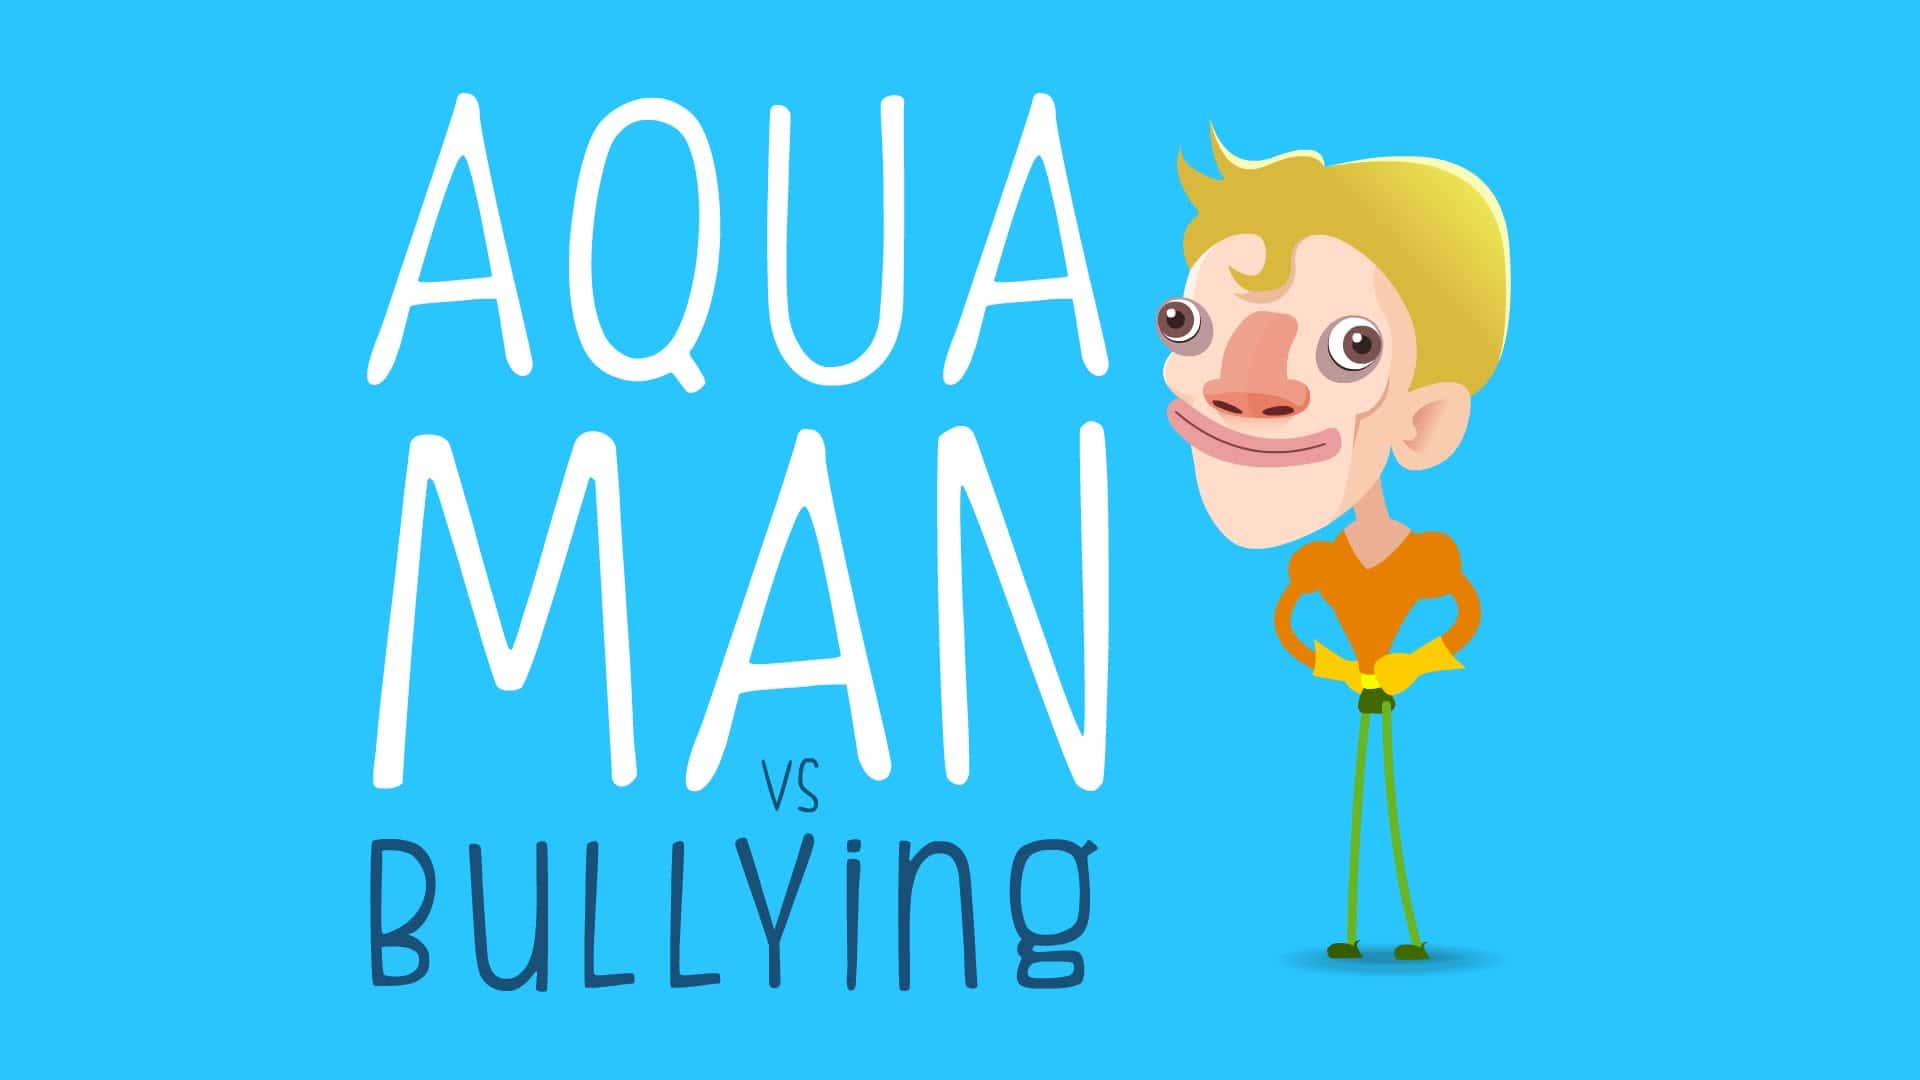 Aquaman contra o Bullying 4